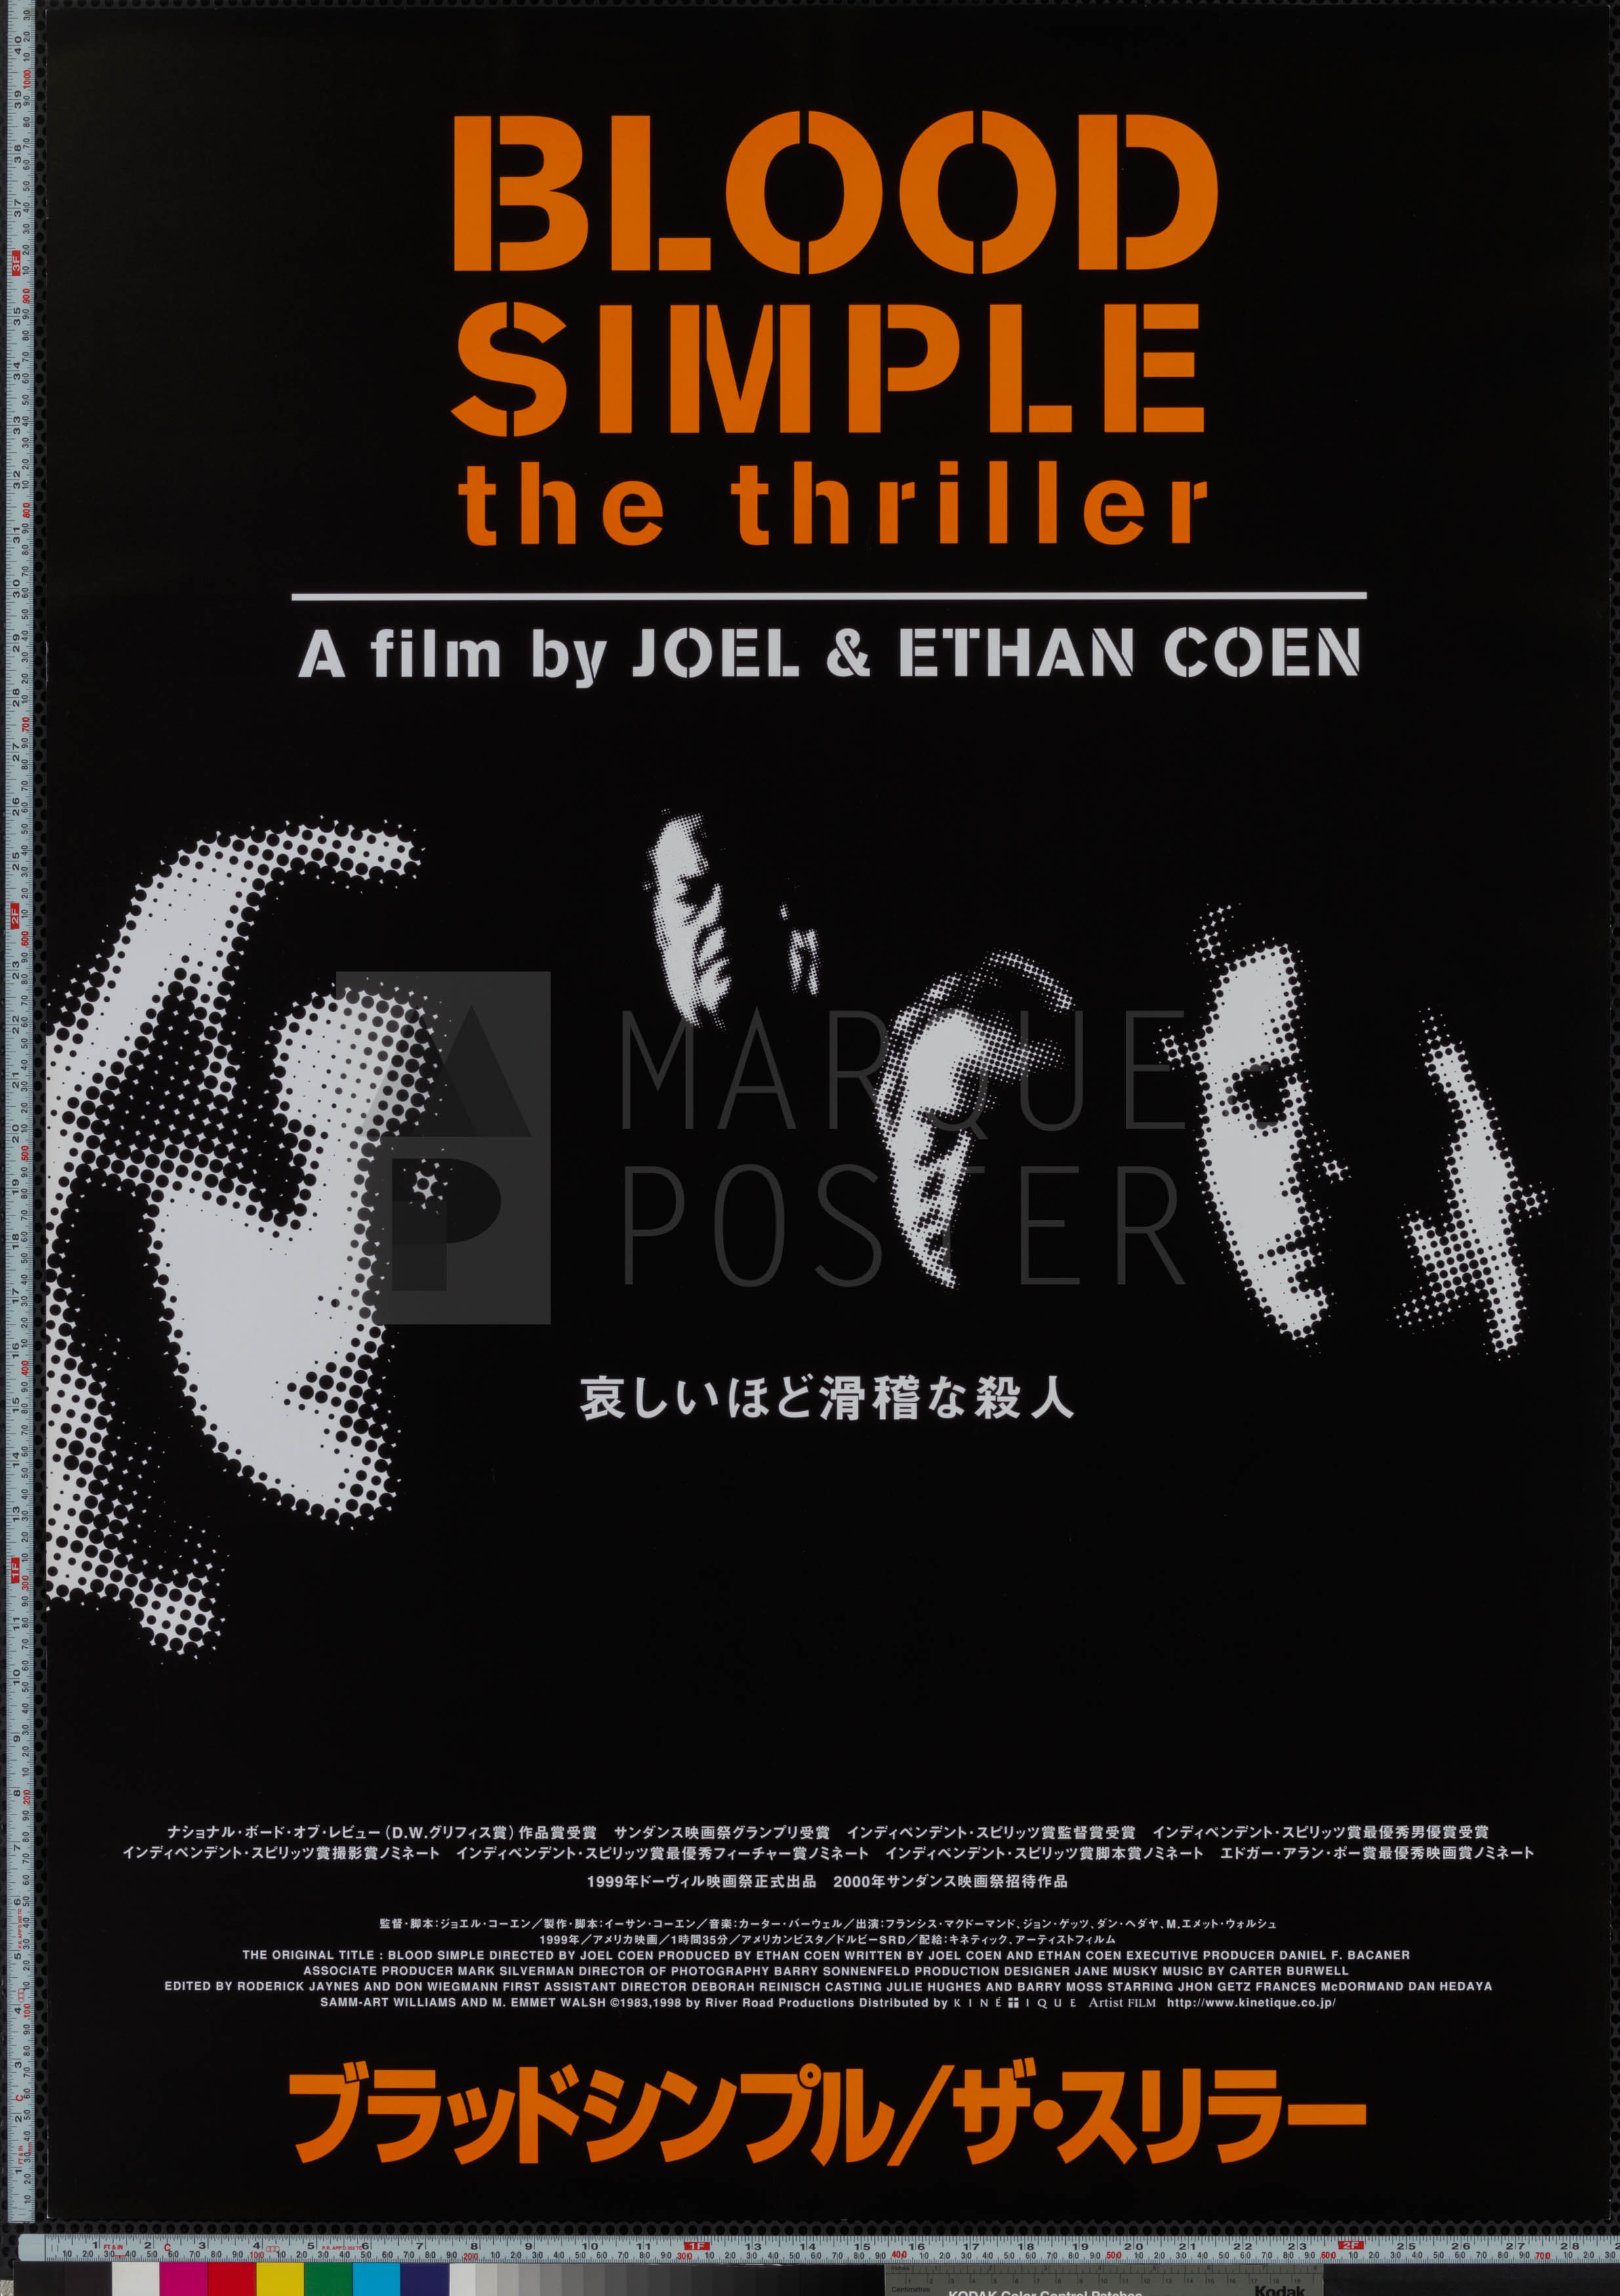 16-blood-simple-faces-style-japanese-b1-2000-02